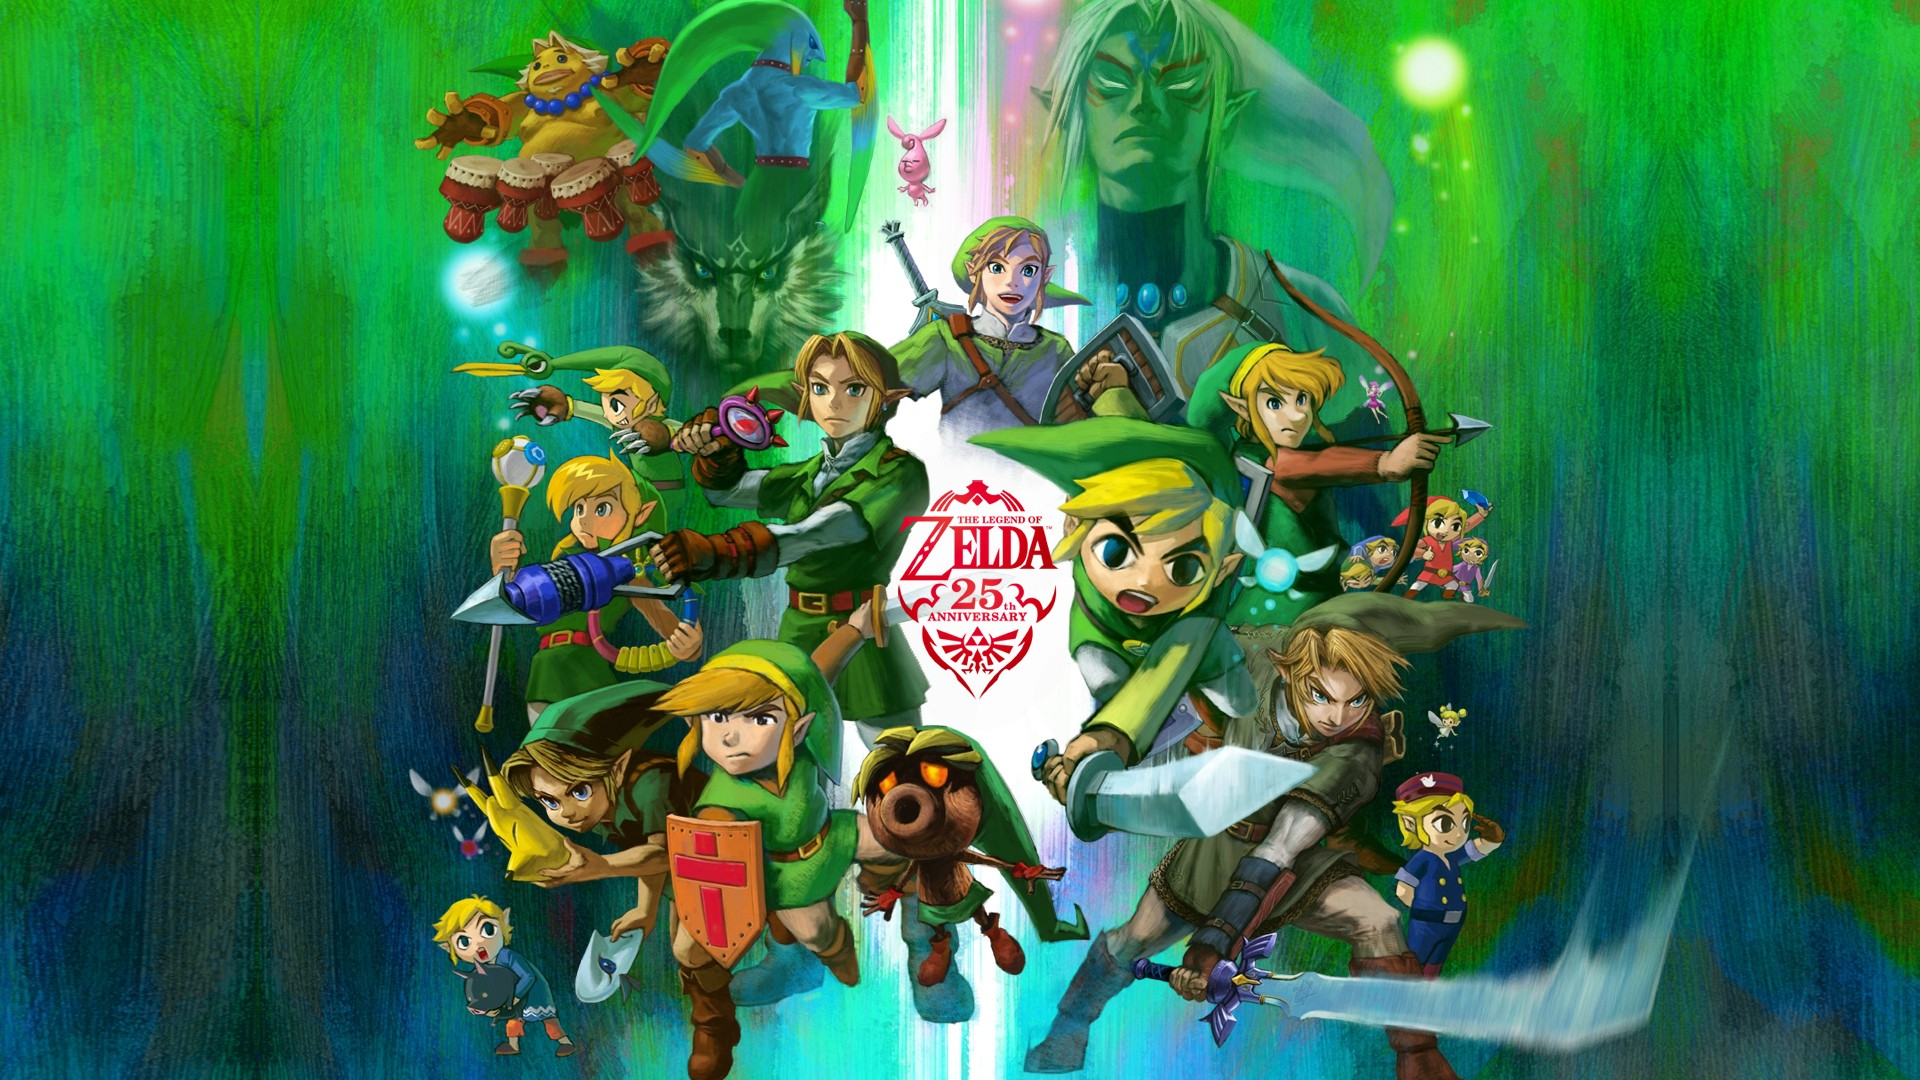 Legend Of Zelda Wallpaper 1920x1080 Download Free Amazing Hd